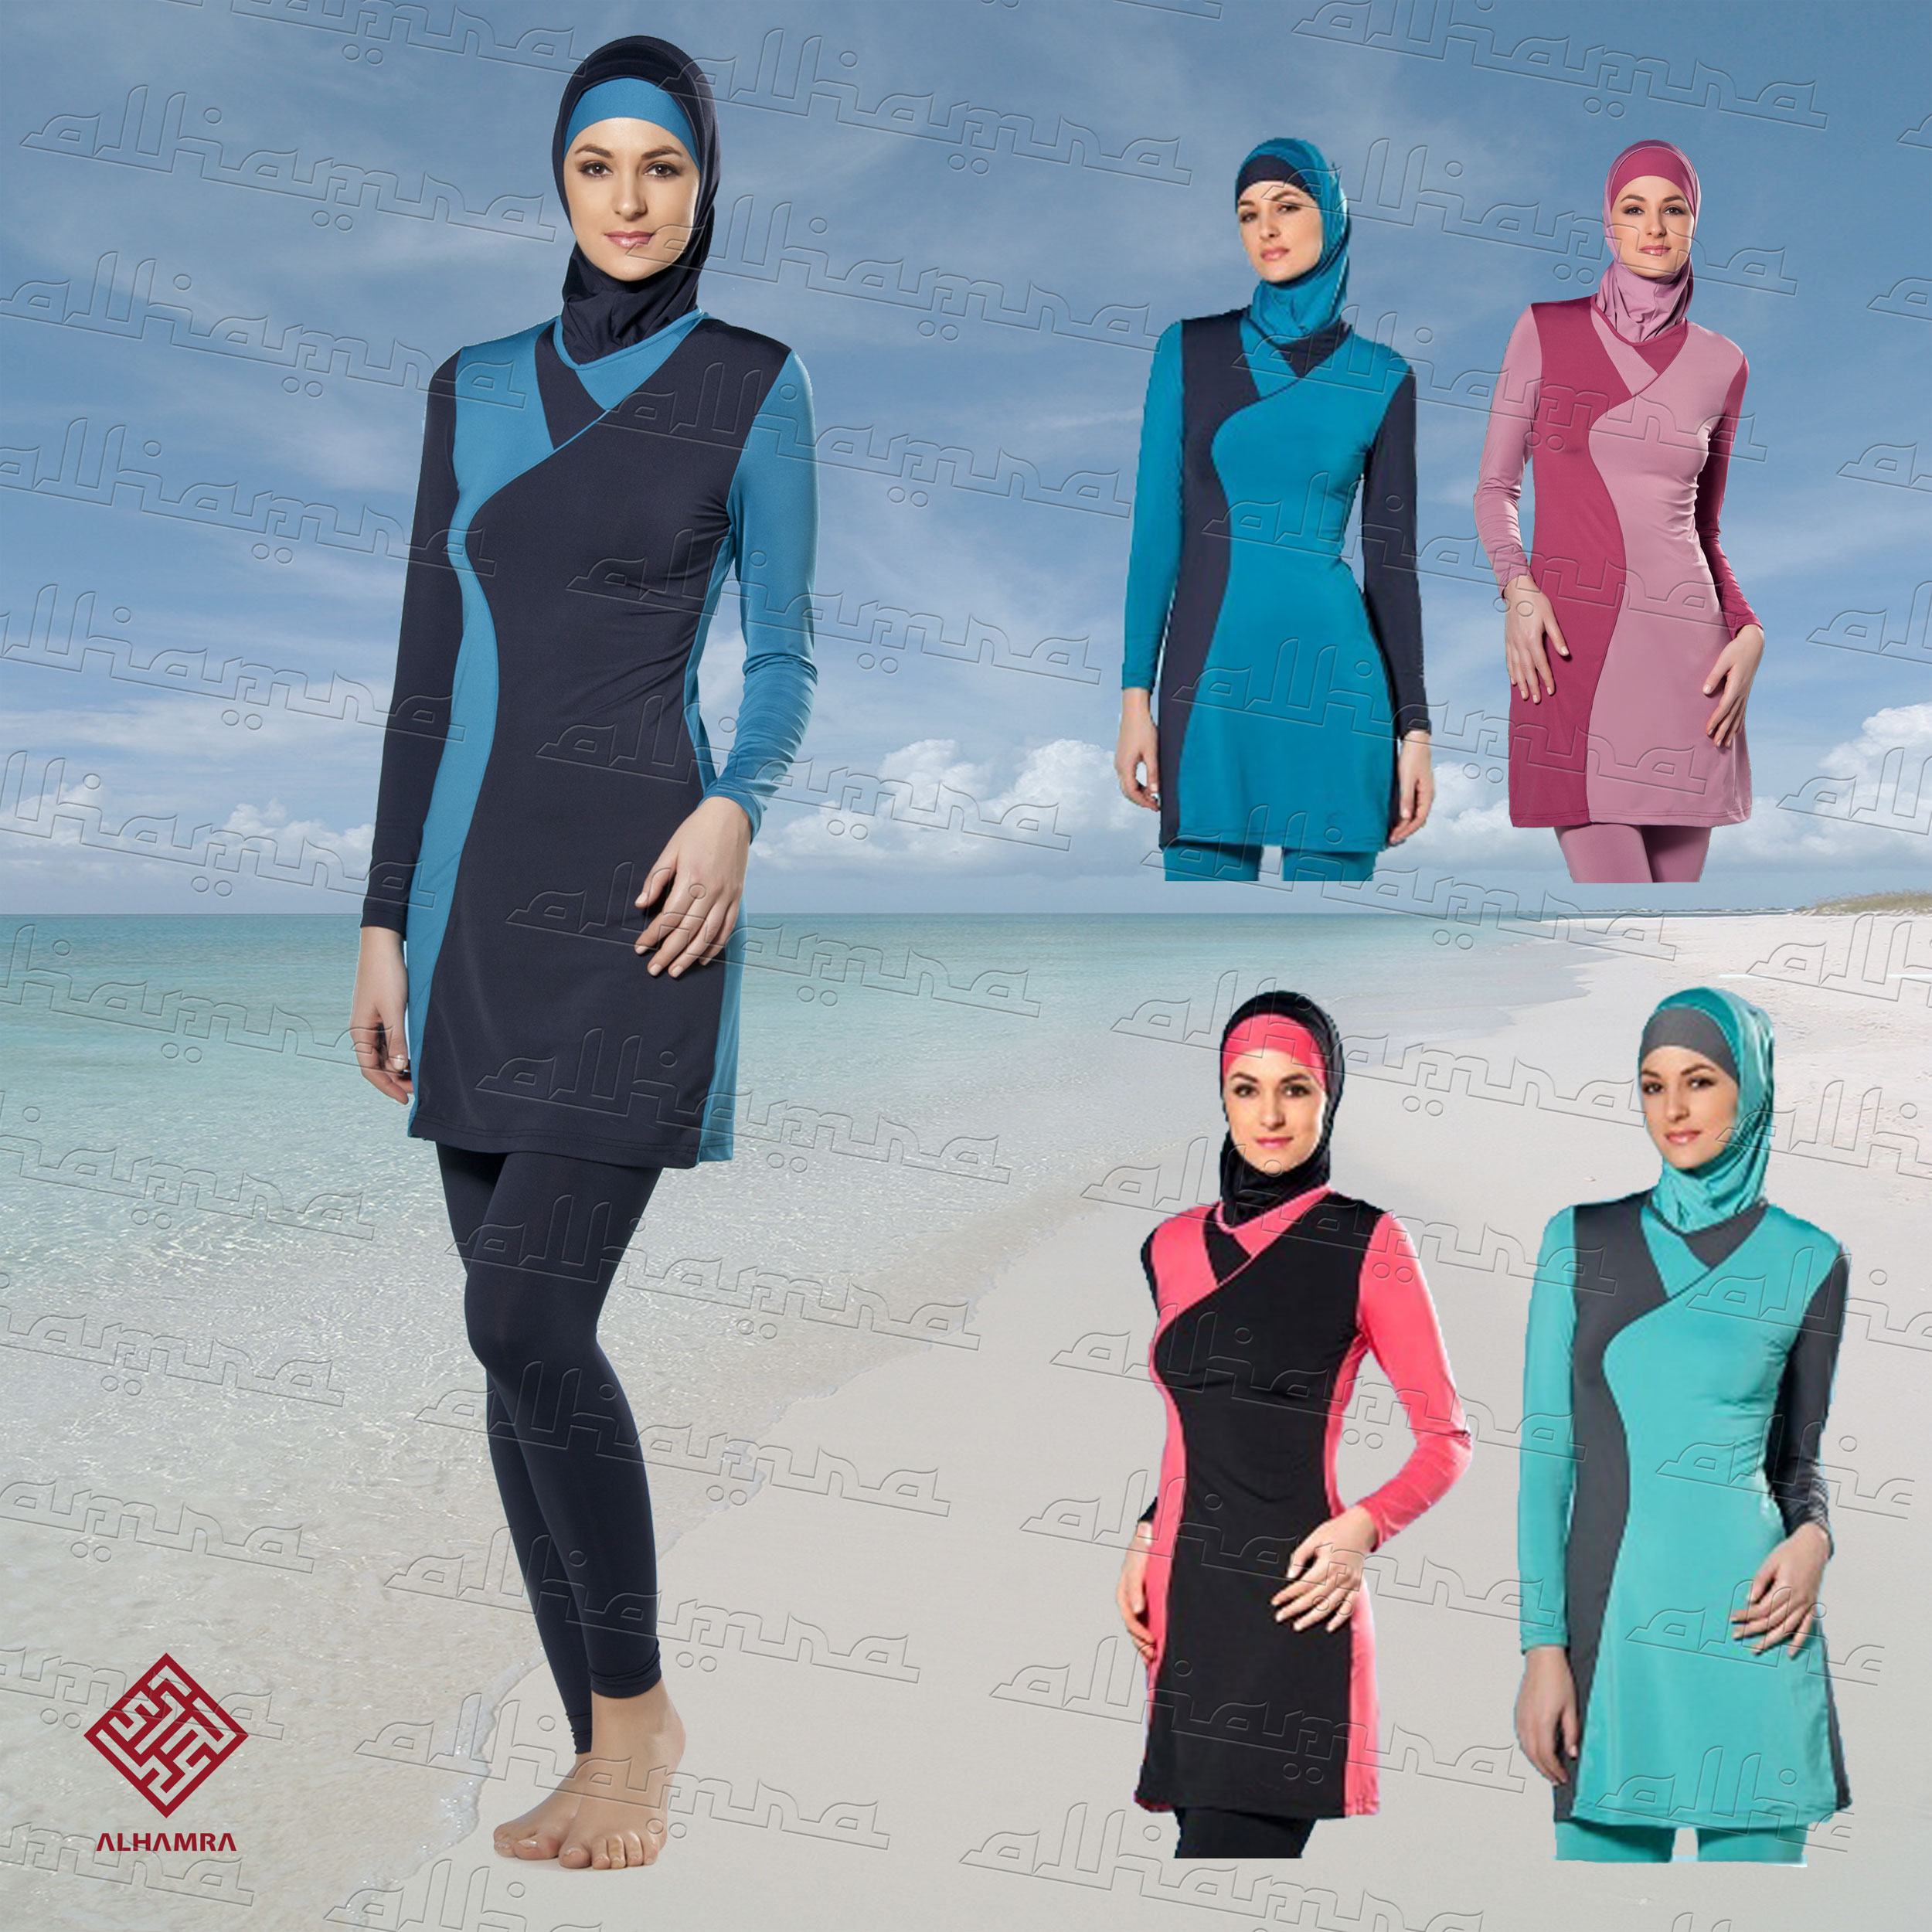 c149d80140f AlHamra Waves Modest Burkini Swimwear Sportwear - Alhamra Swimwear